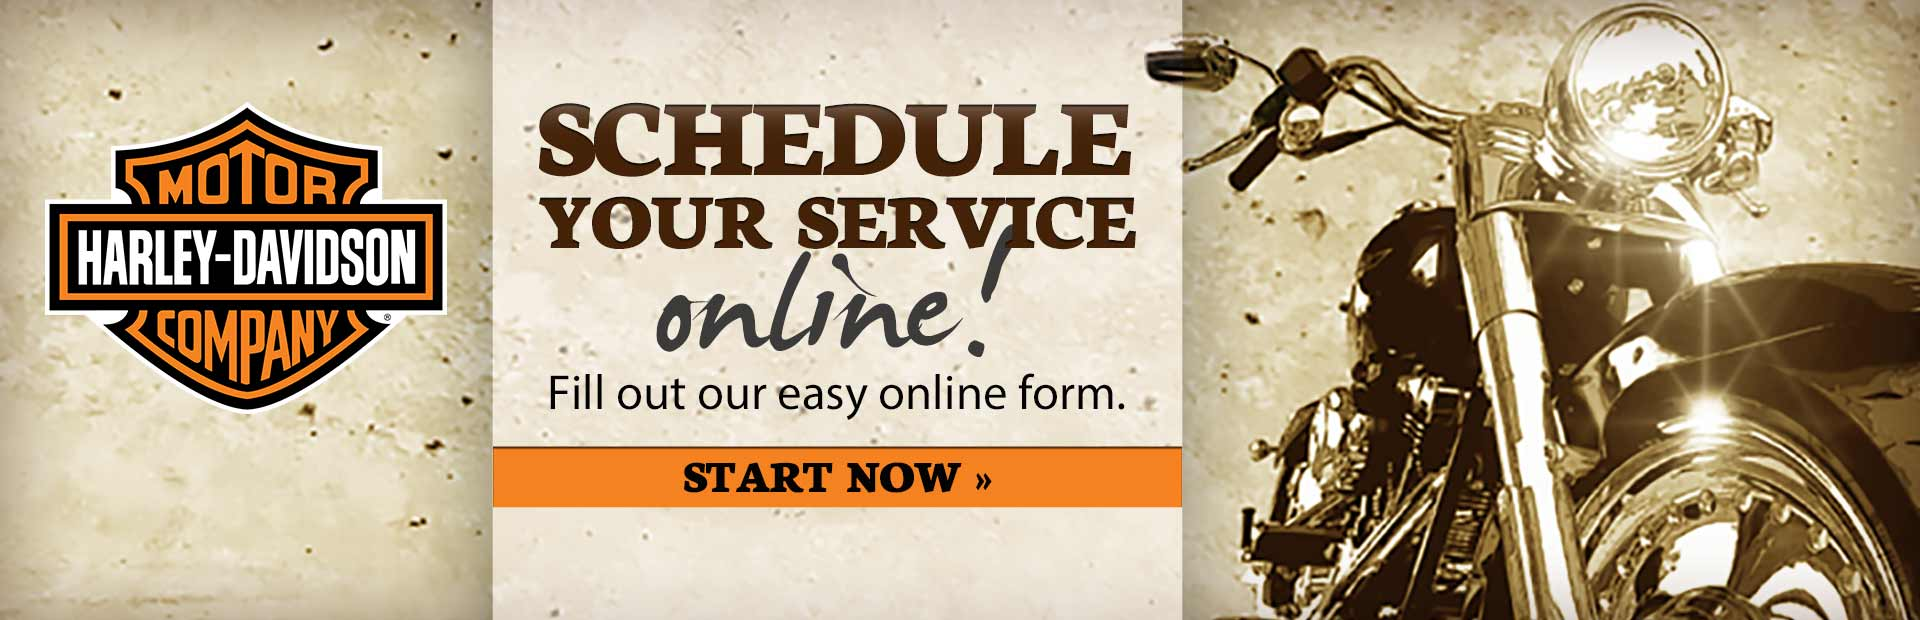 Schedule your service online! Fill out our easy online form. Click here to start now.